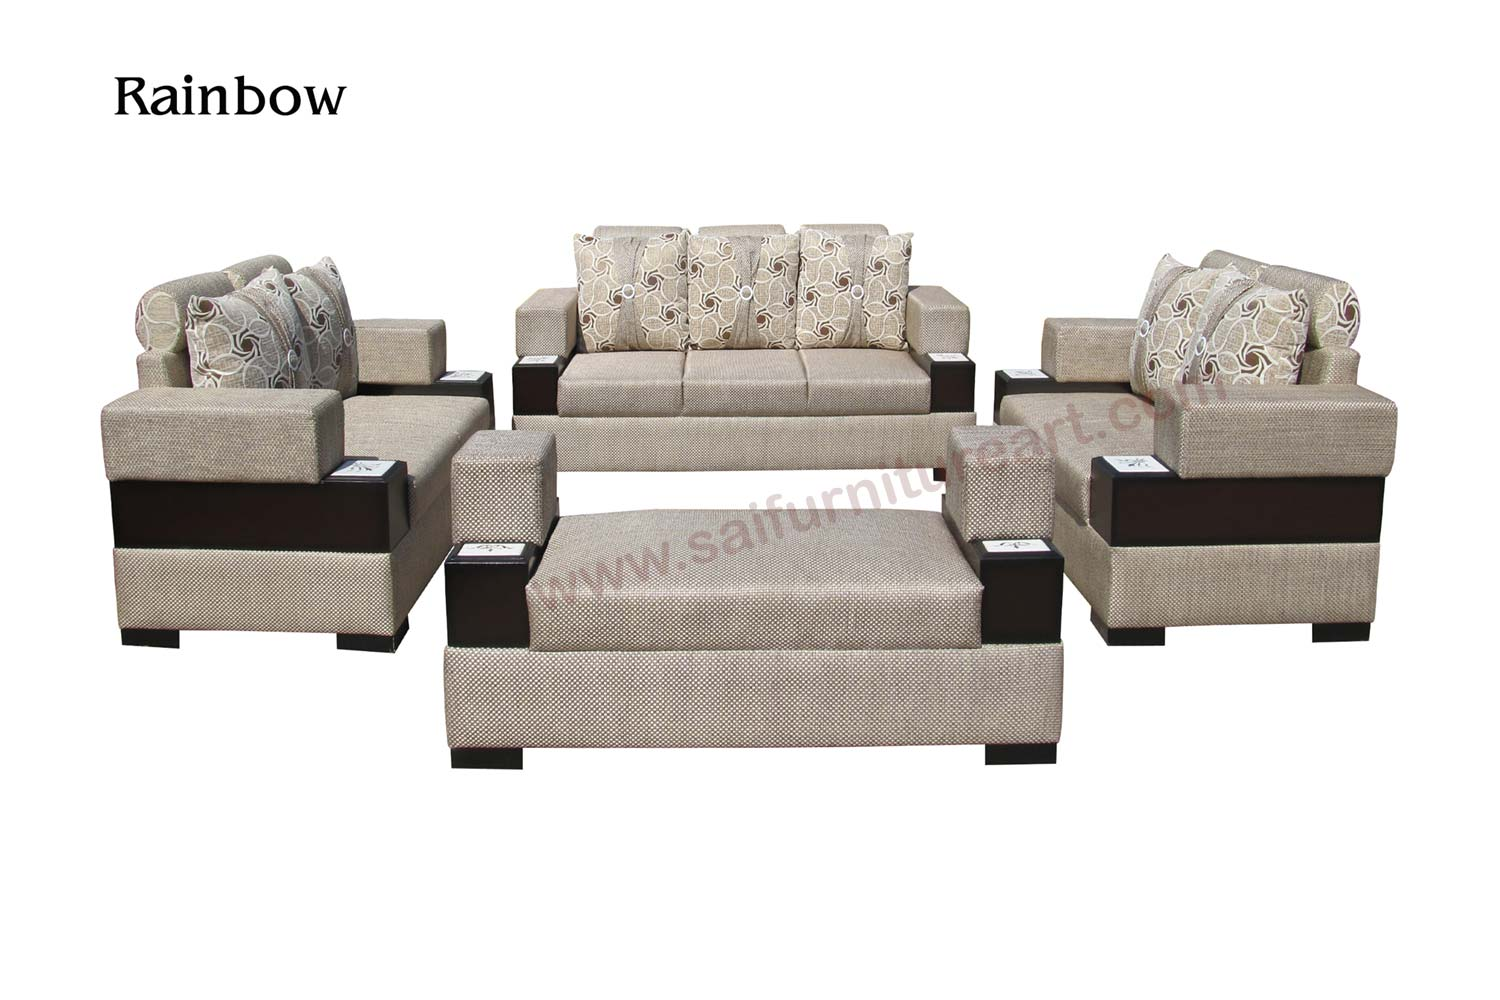 Sofa Set Offers In Mumbai Buy Rainbow Sofa Set Online Store Kirti Nagar Rainbow Sofa Set